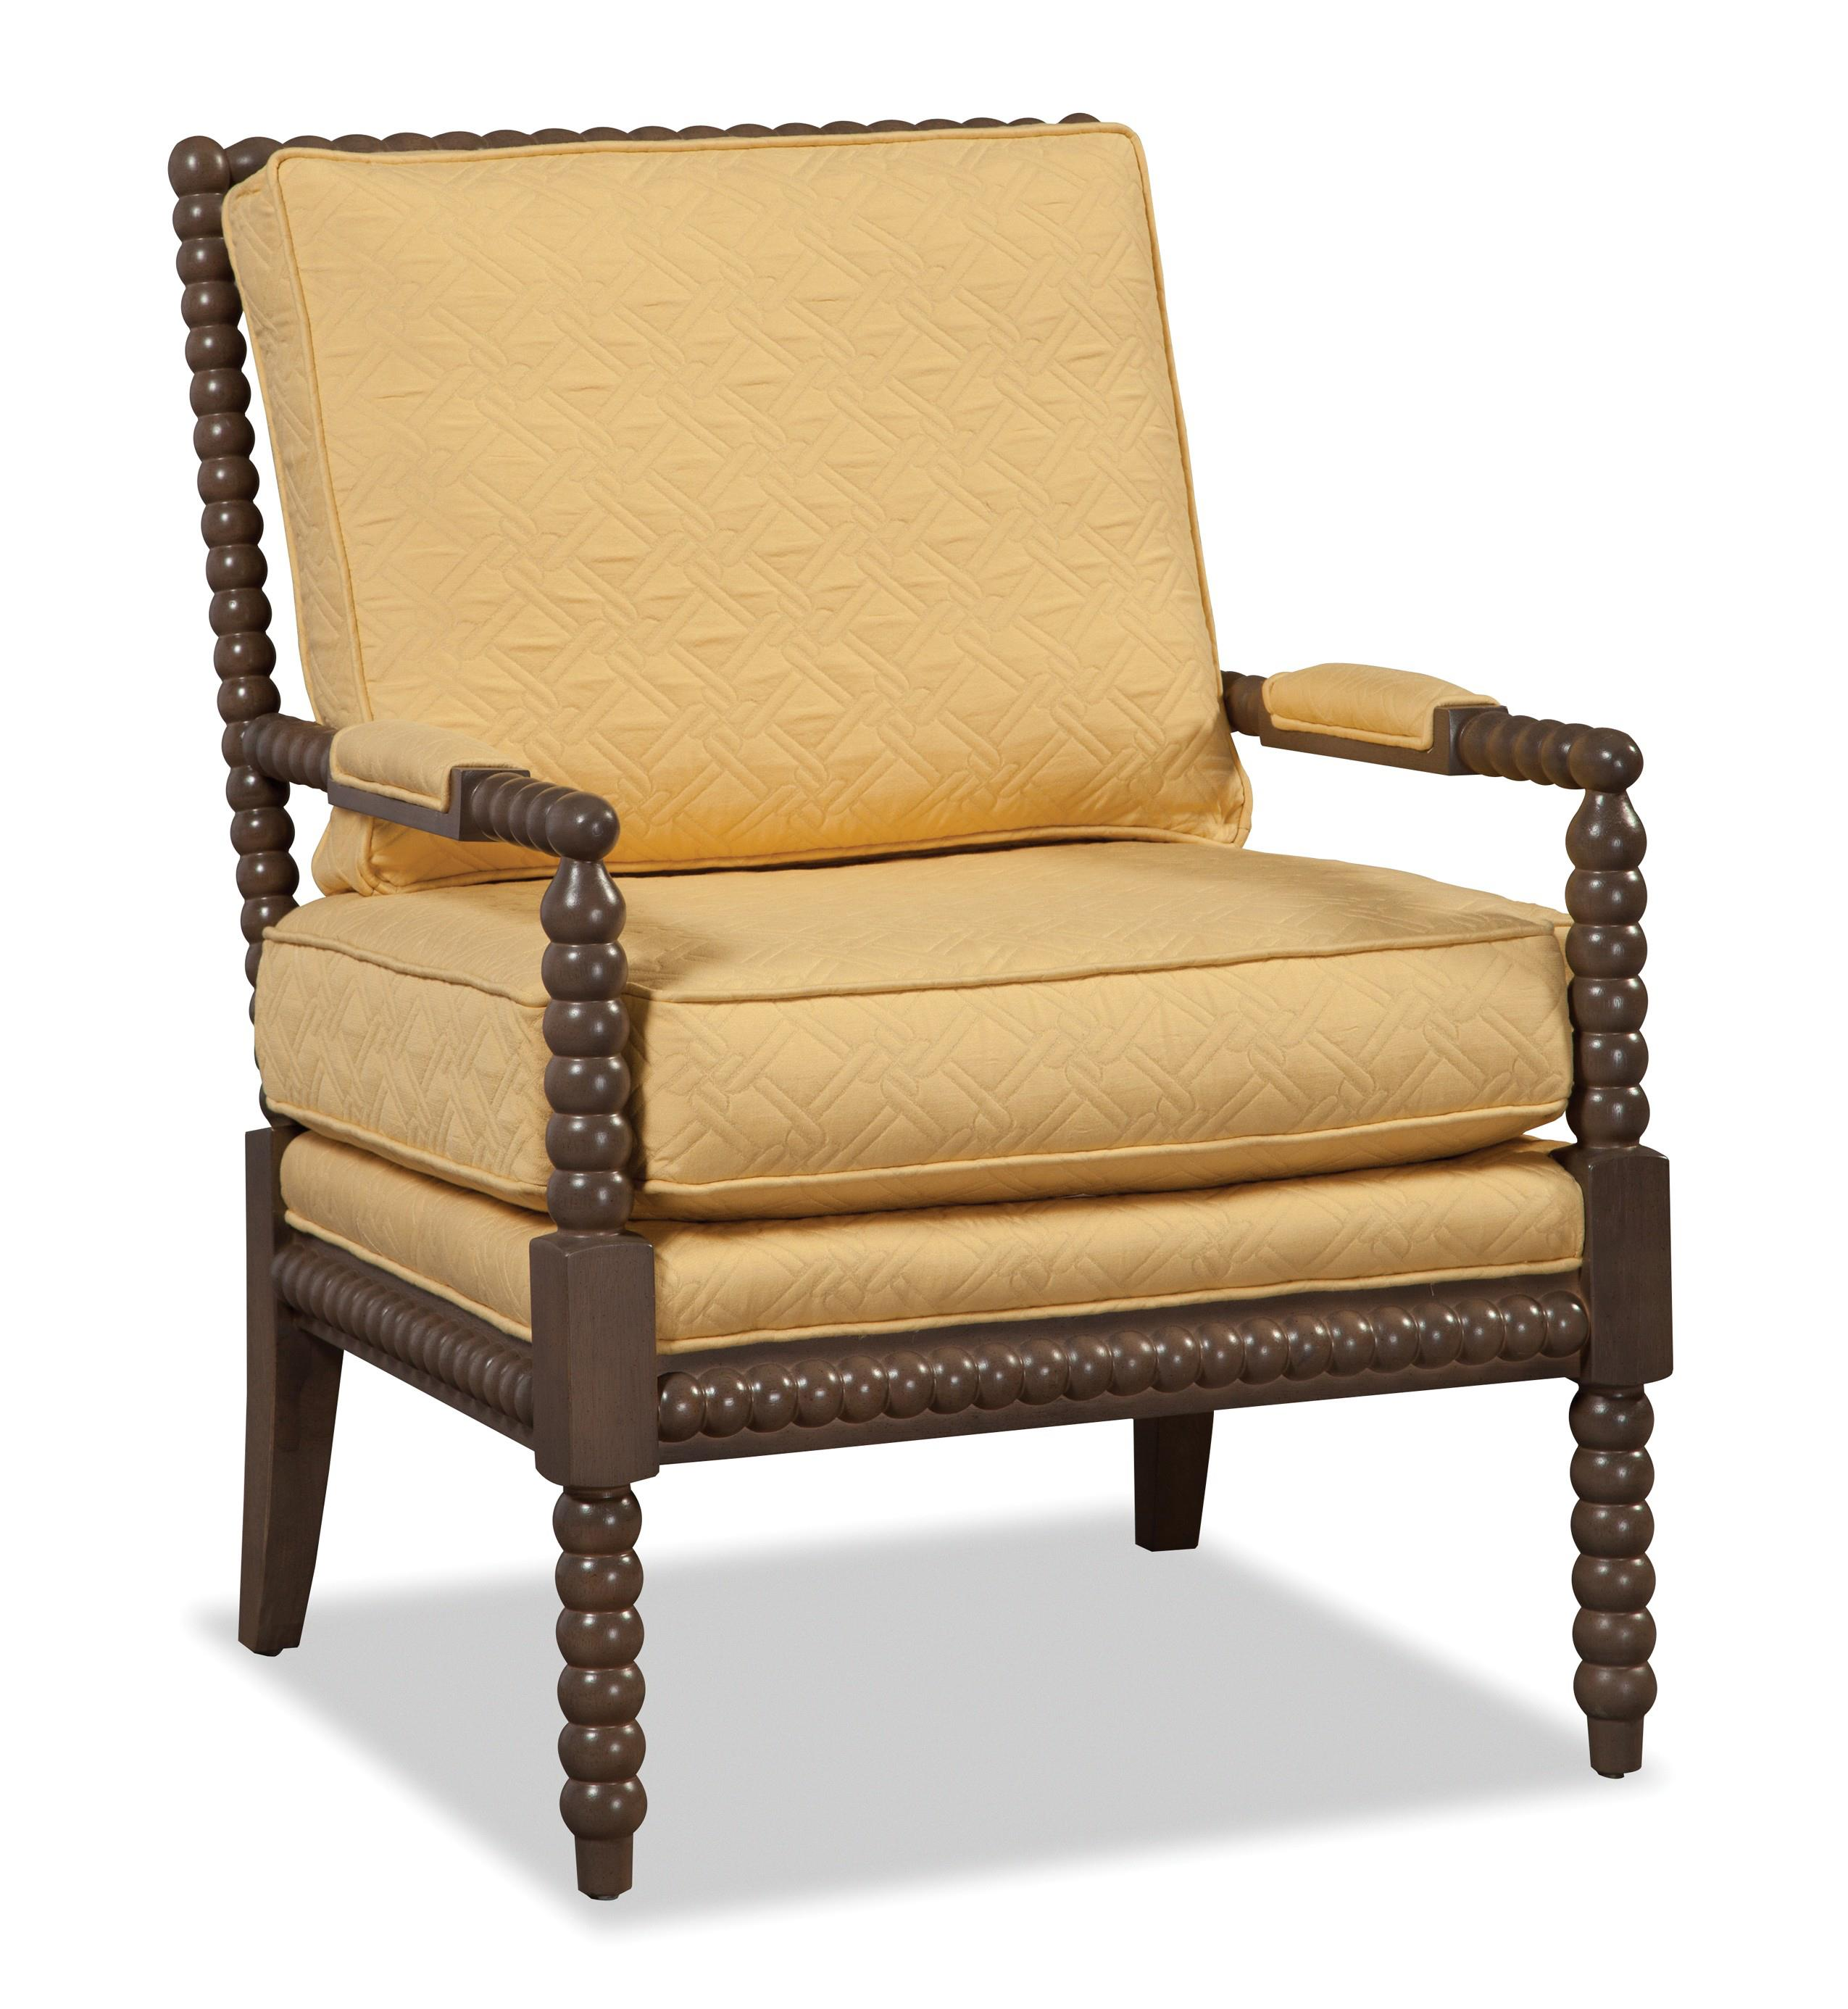 wood frame accent chairs chicco caddy hook on chair recall craftmaster traditional with spool turned exposed